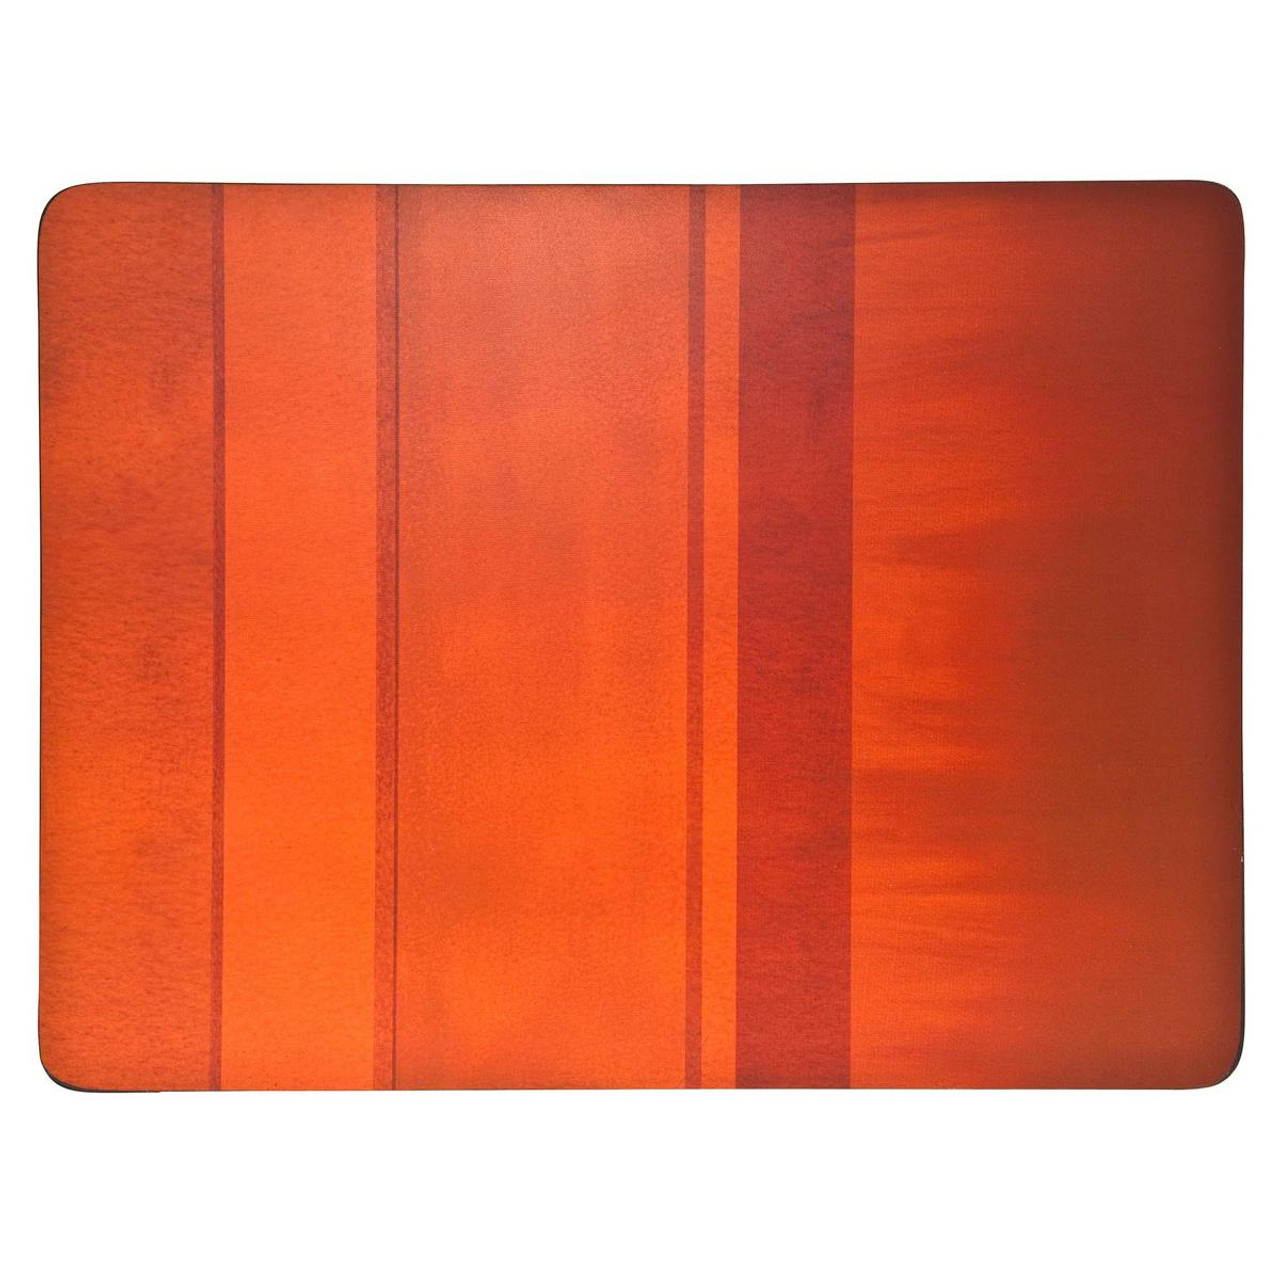 Denby Colours Orange Set Of 6 Placemats